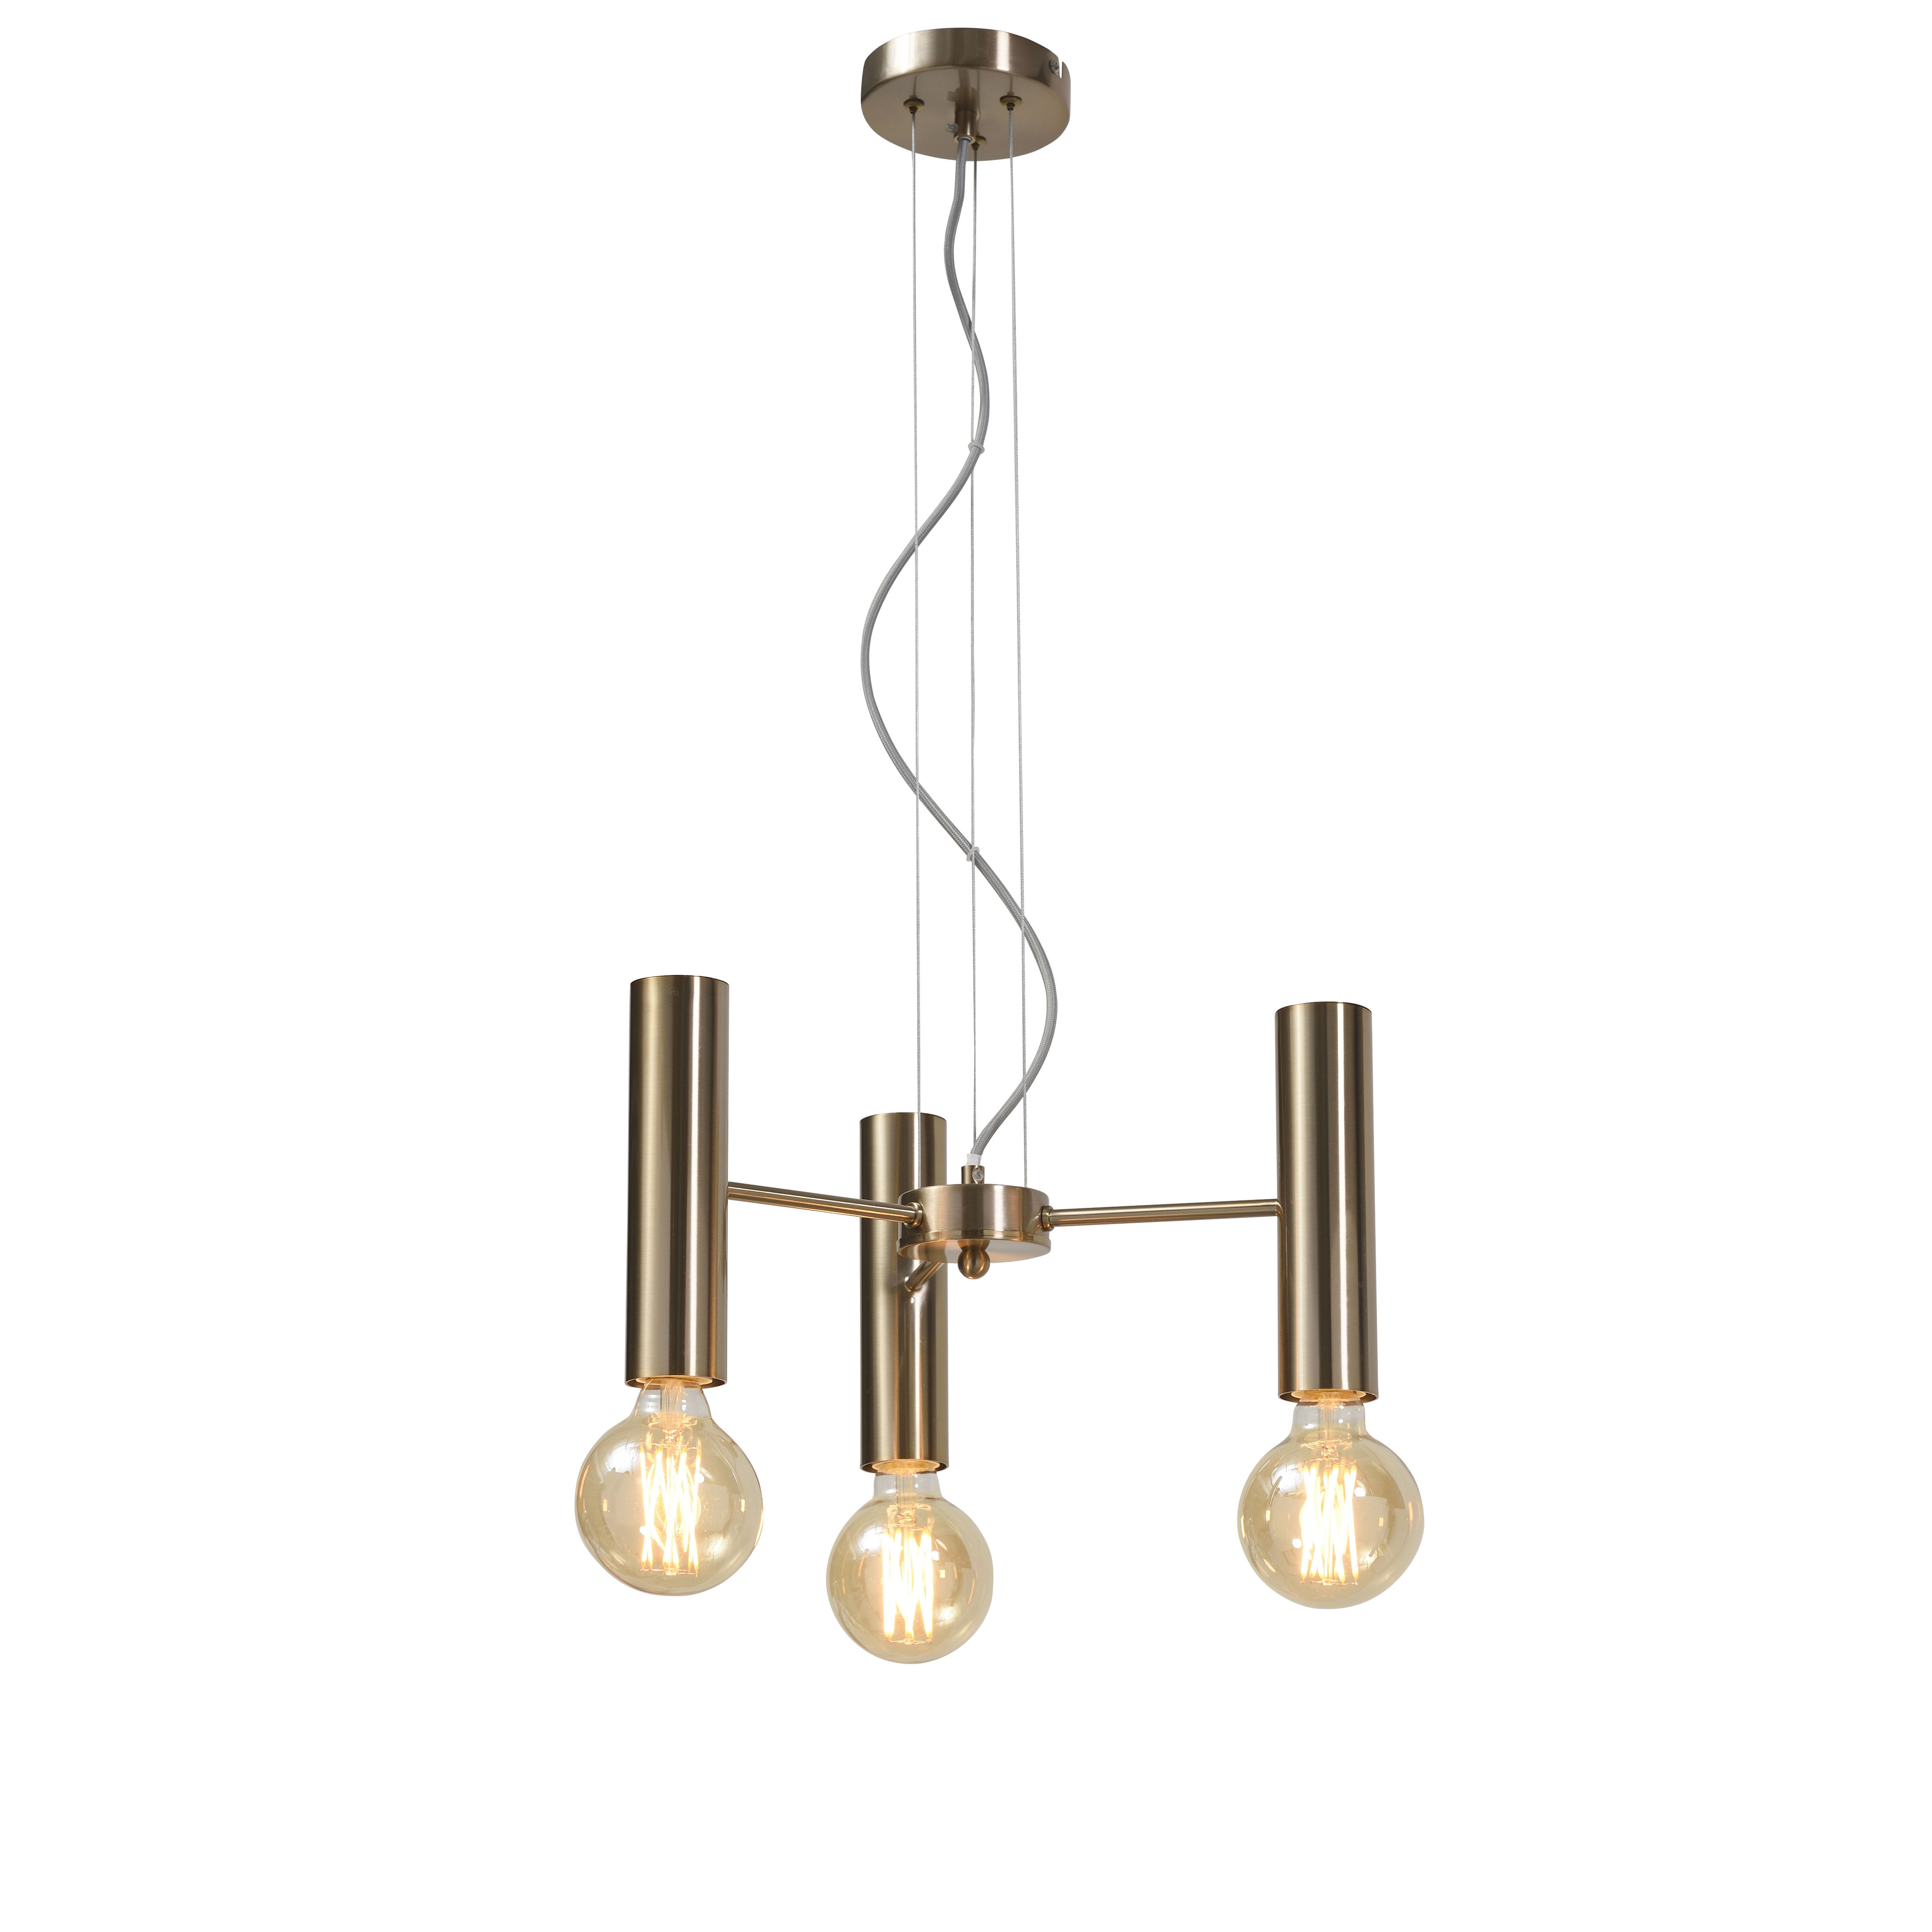 Lighting - Pendant Lighting - Cannes Multi Small Pendant - / 3 arms - Metal / Ø 40 cm by It's about Romi - Gold - Iron